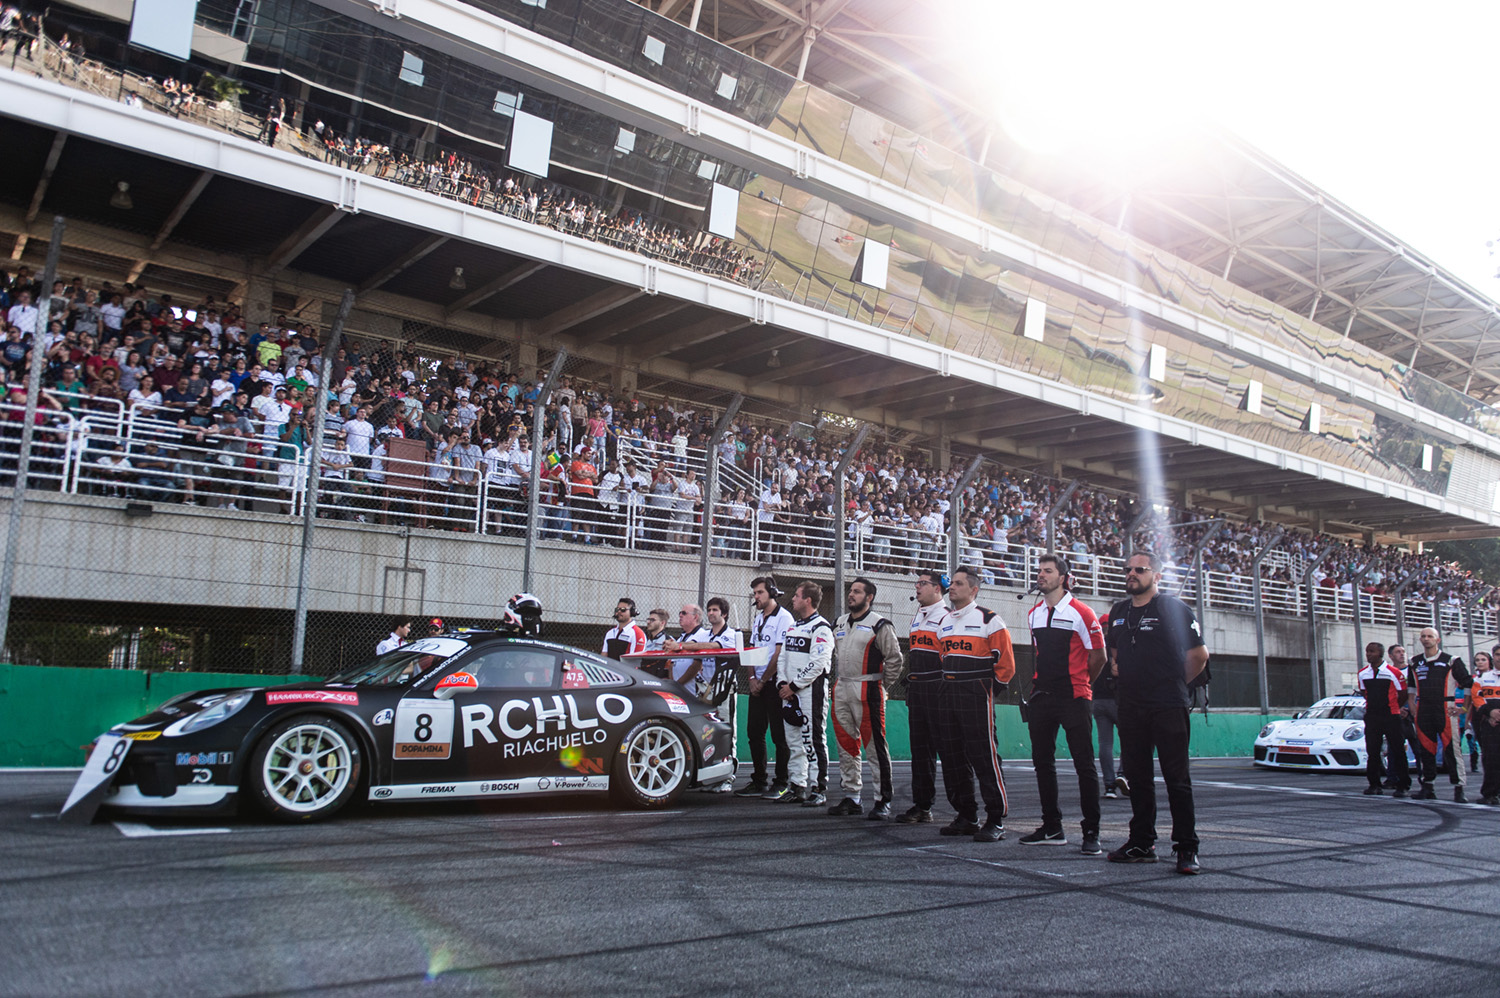 Photo of Porsche Endurance – A Porsche Endurance Series fecha 2018 com prova de 500 km, grid qualificado e ingressos à venda em Interlagos